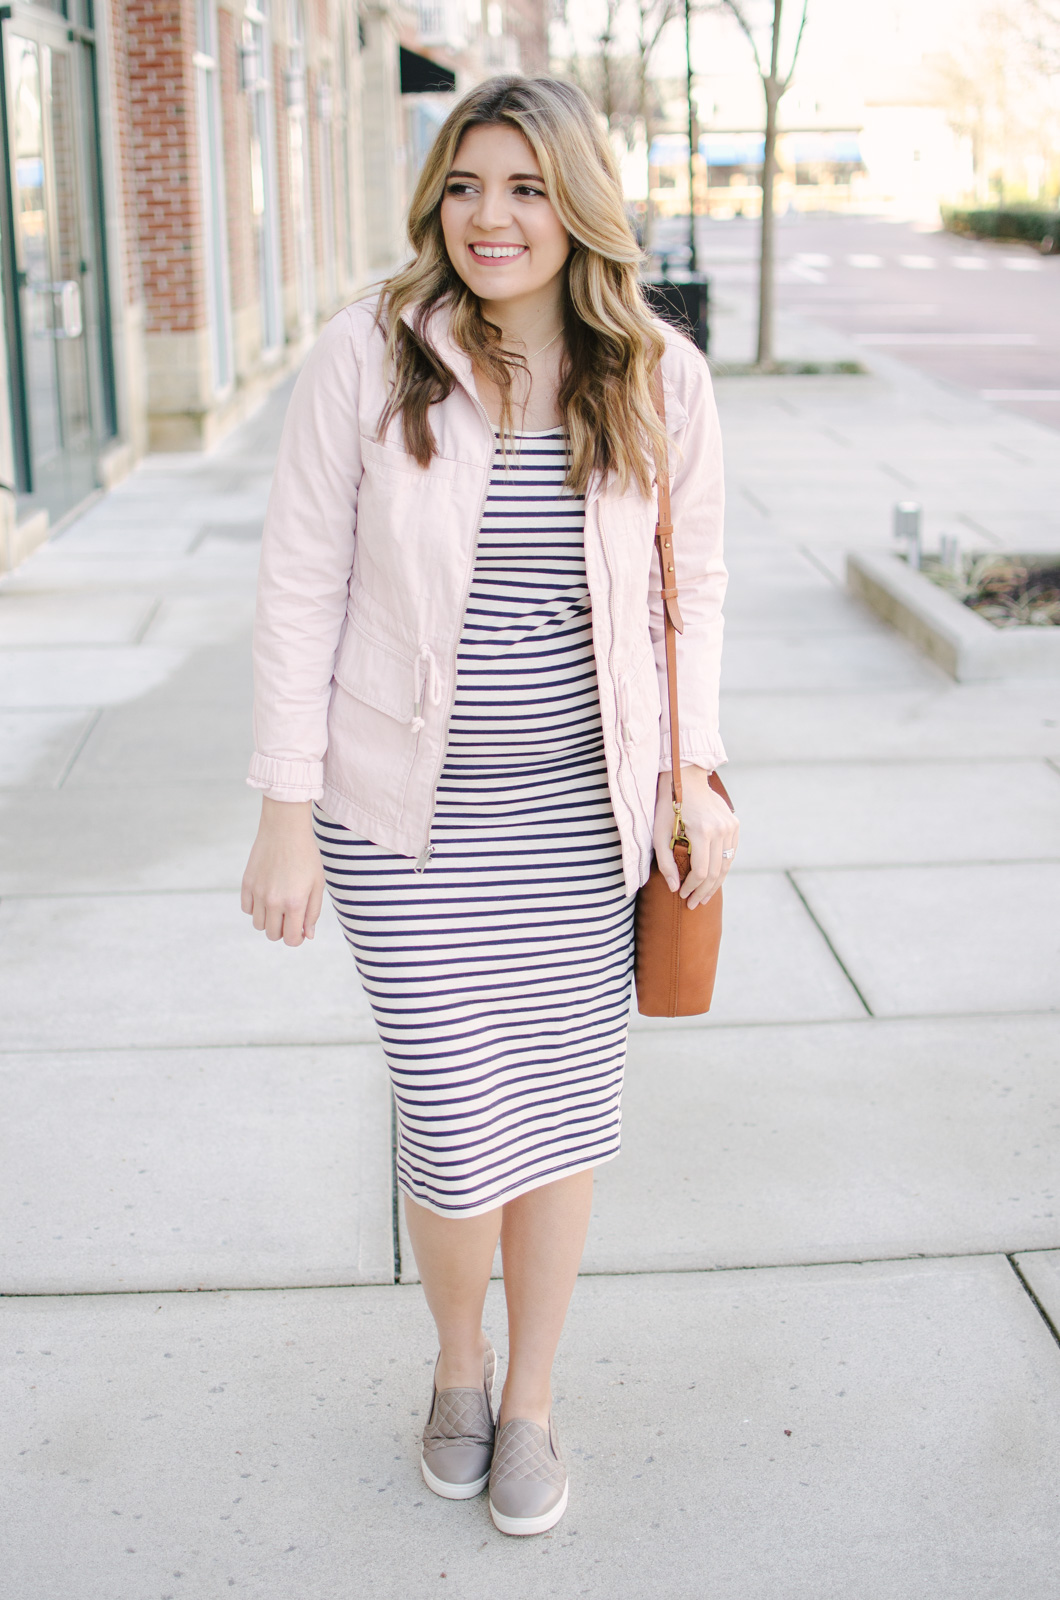 two ways to wear a striped dress - maternity spring outfit ideas | Shop this look and see the other striped dress outfit at bylaurenm.com!